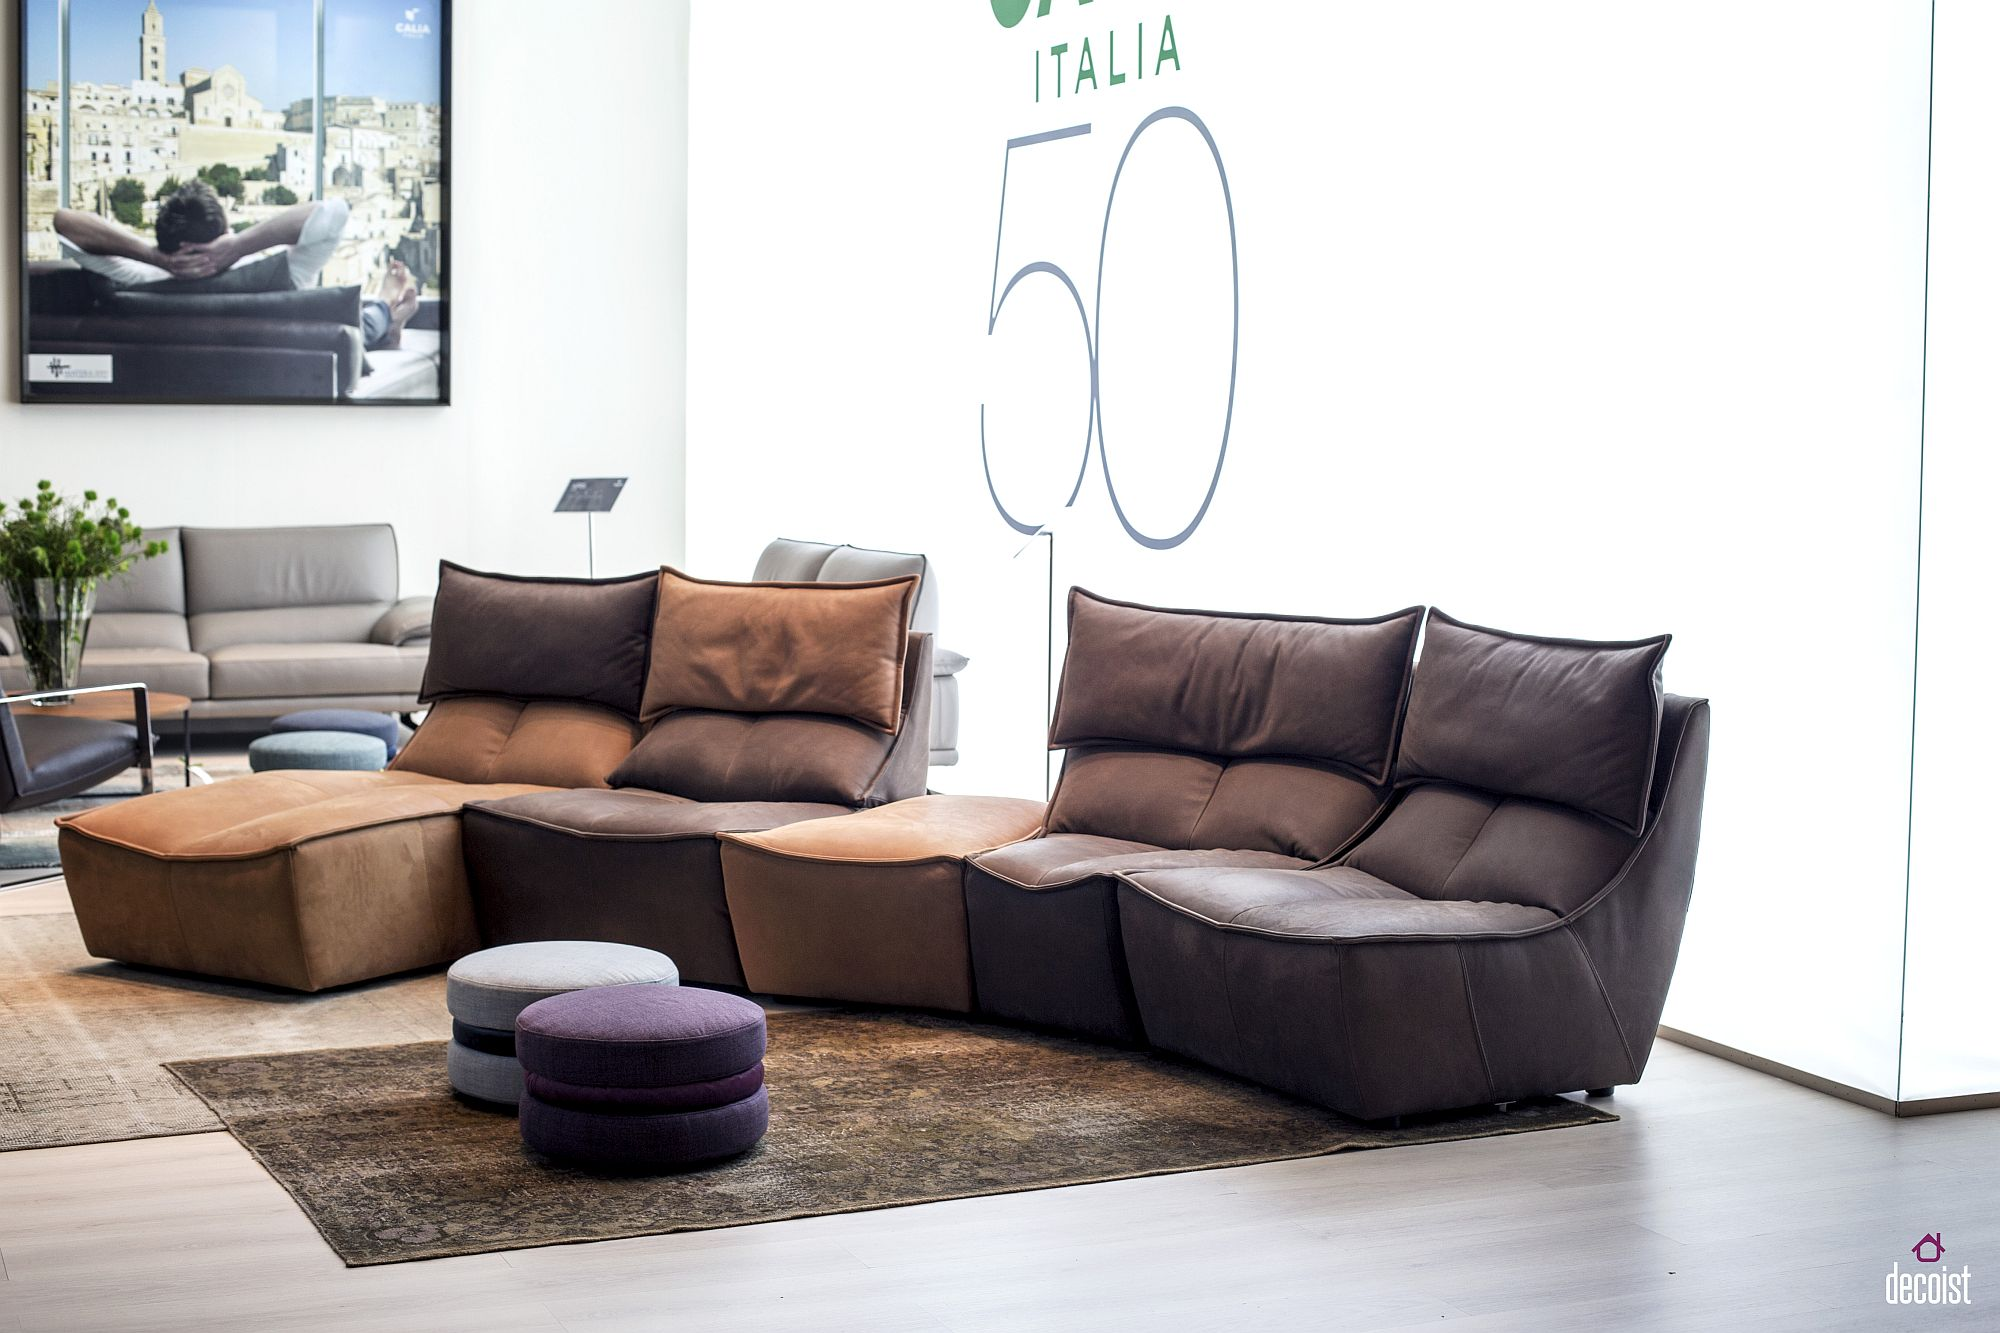 Modular sofa units from Calia Italia add color, contrast and design comfort